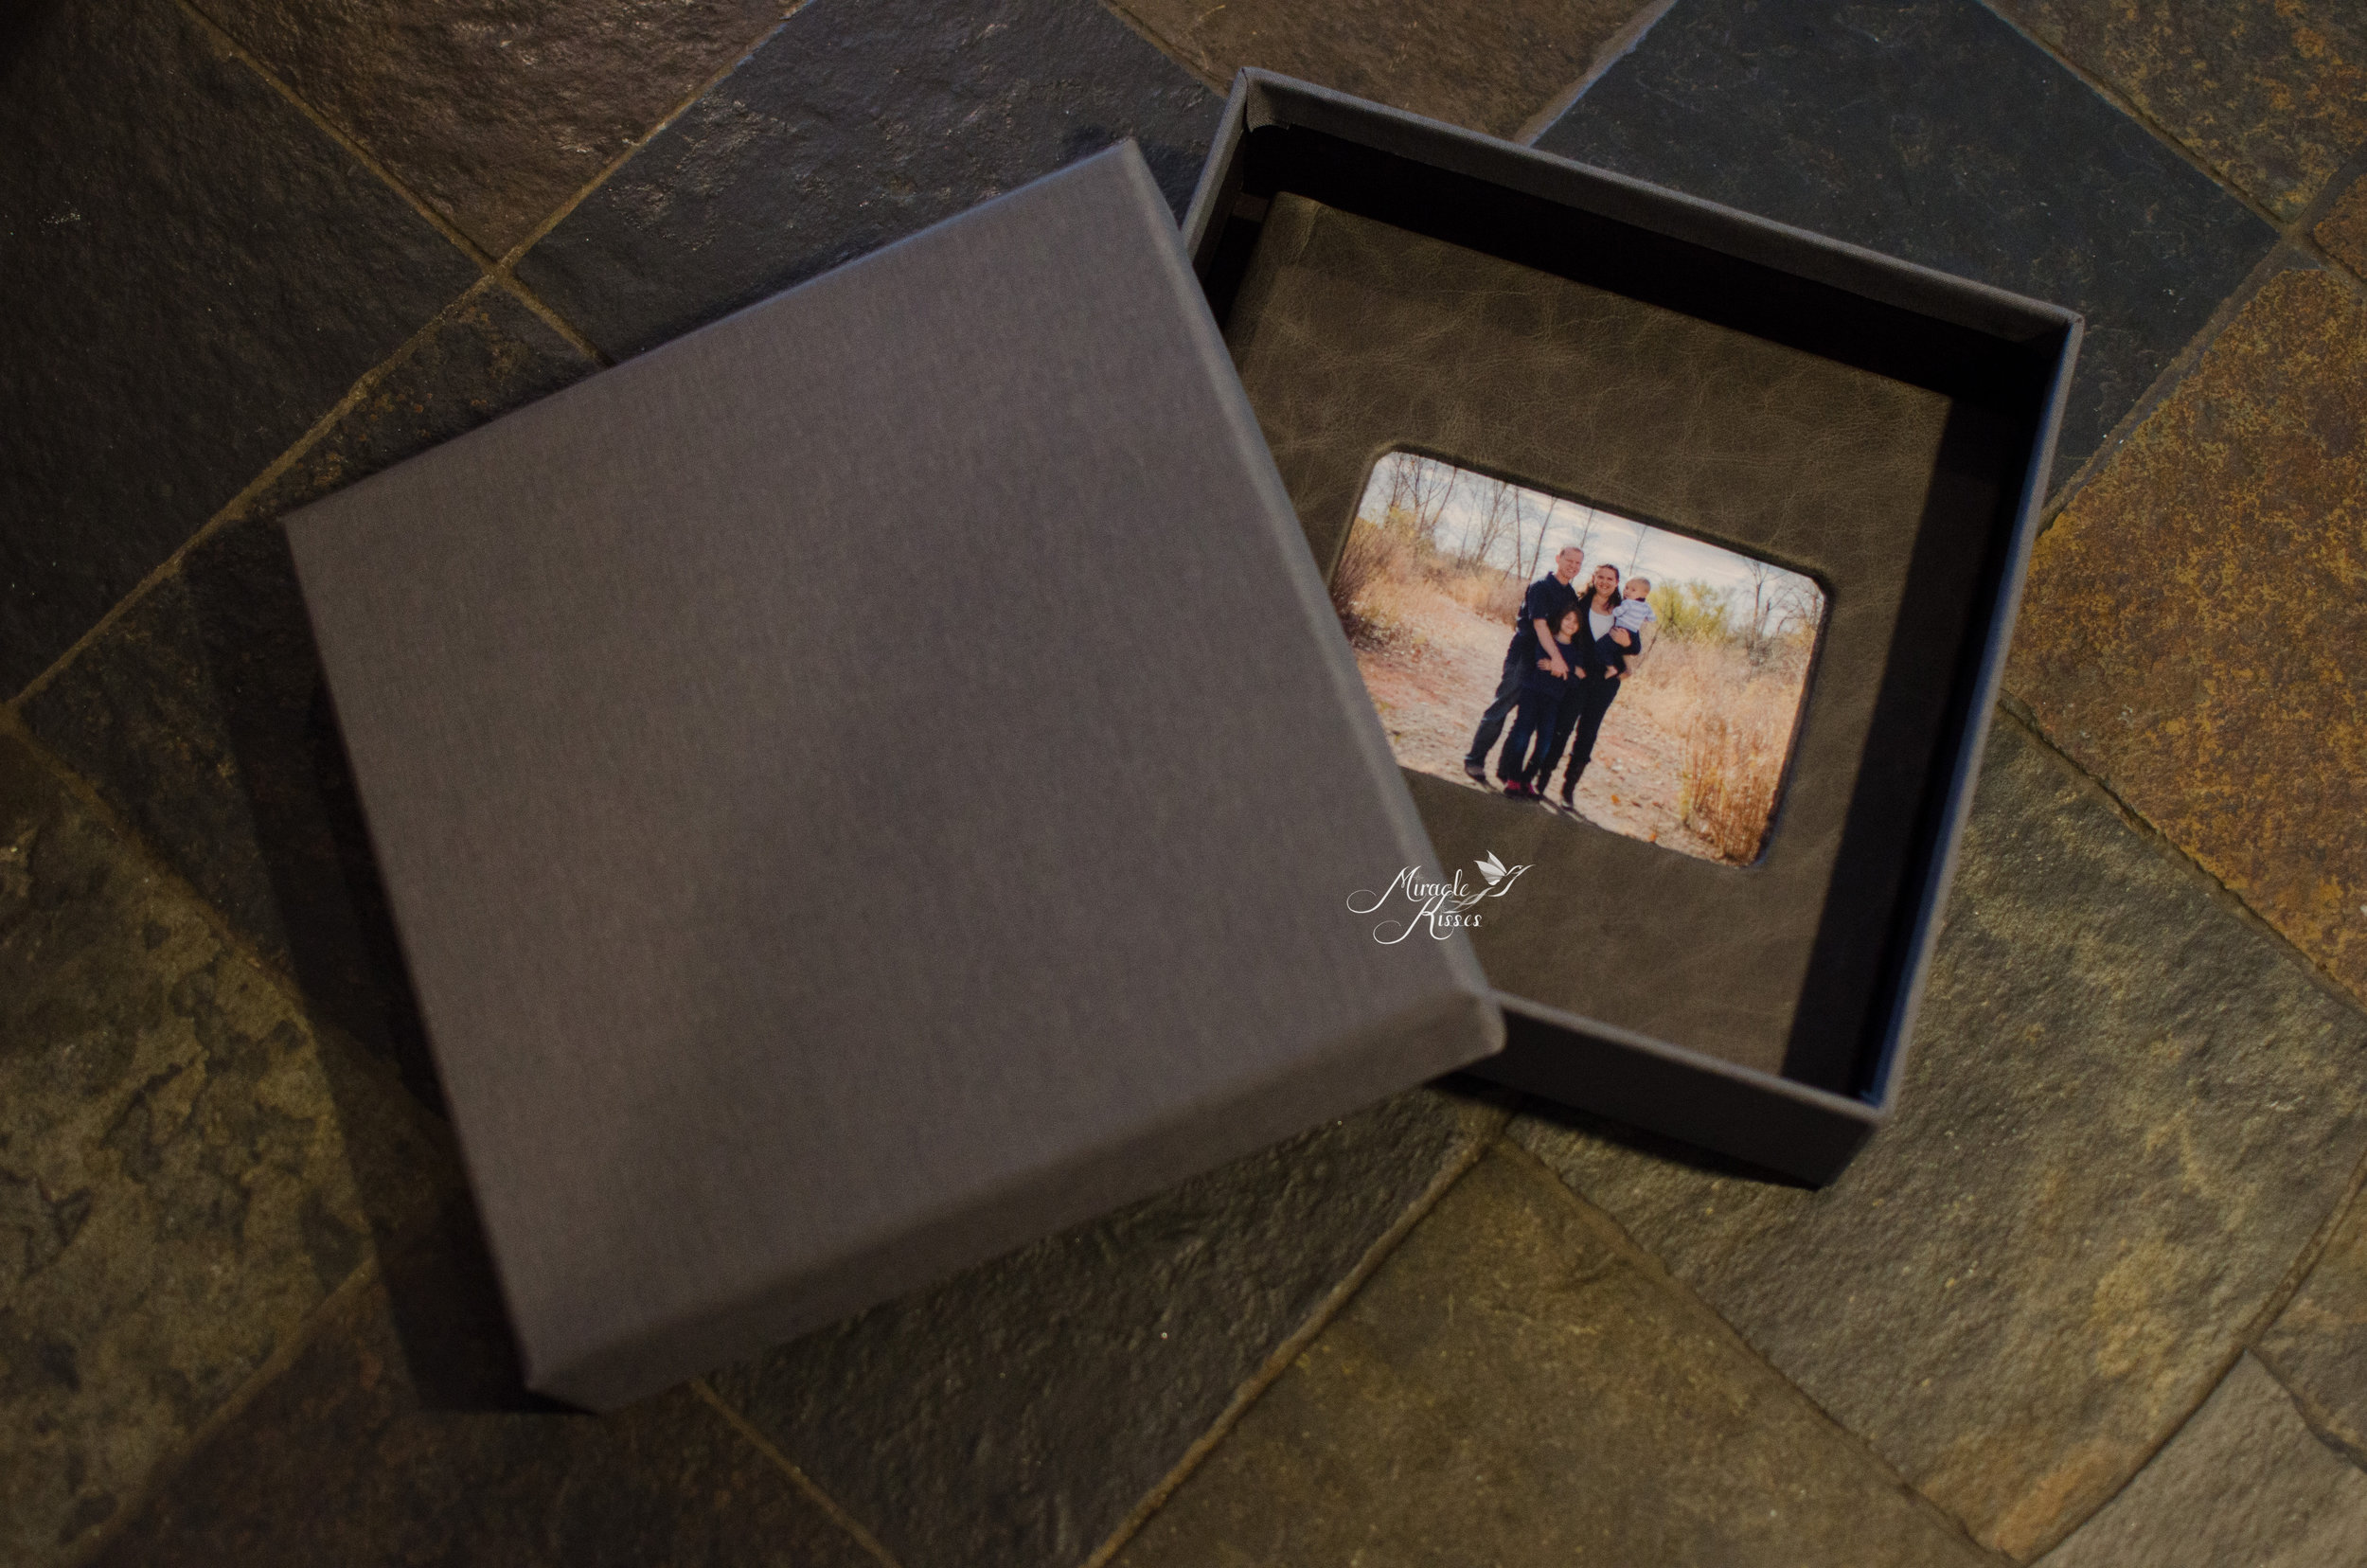 Heirloom photo album comes in beautiful grey box